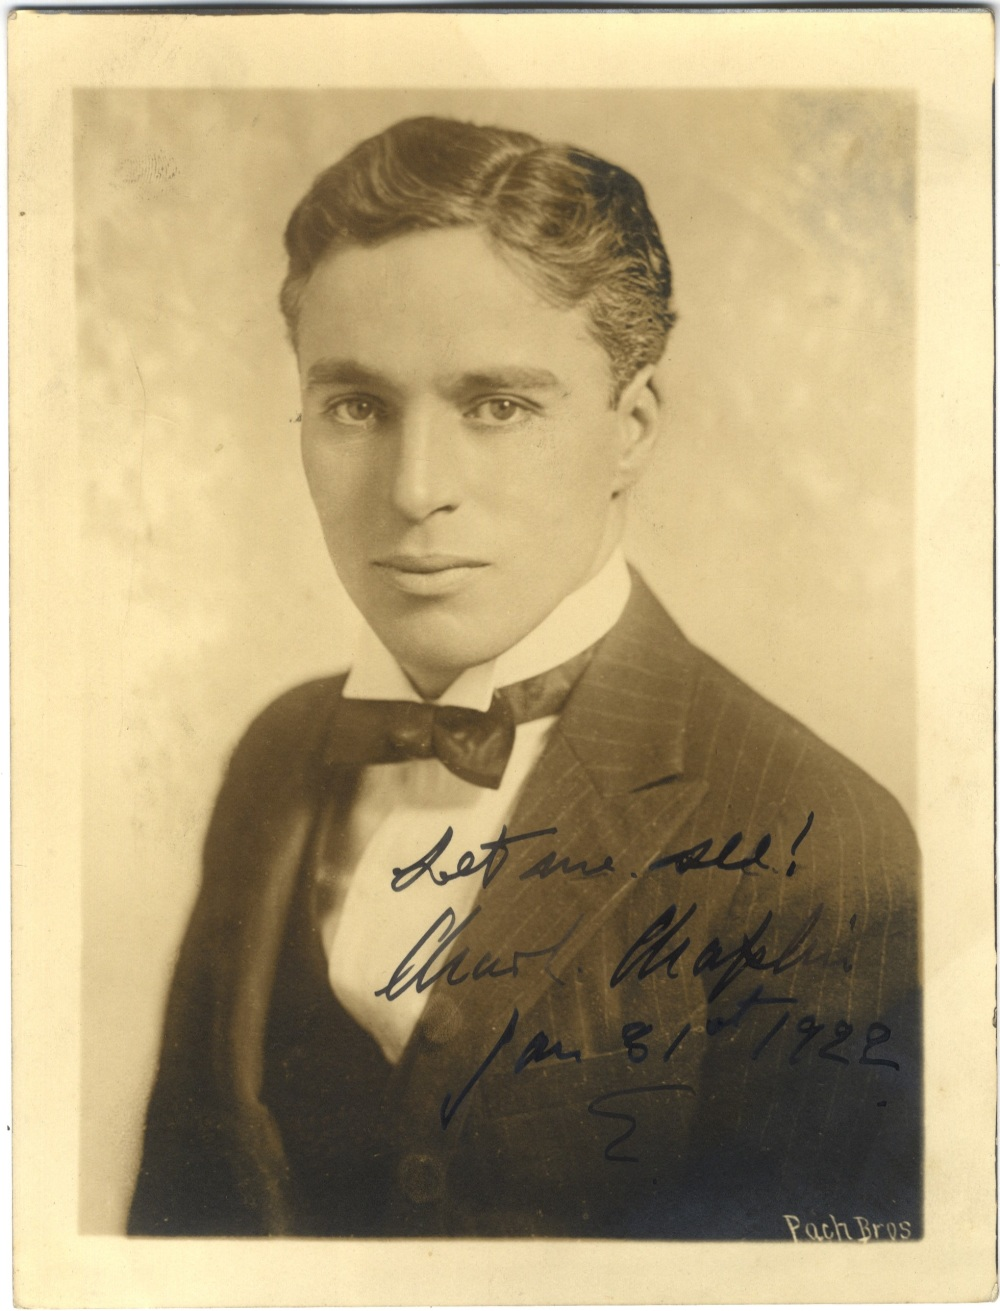 Lot 230 - CHAPLIN CHARLES: (1889-1977) English Film Comedian, Academy Award winner. A good vintage signed